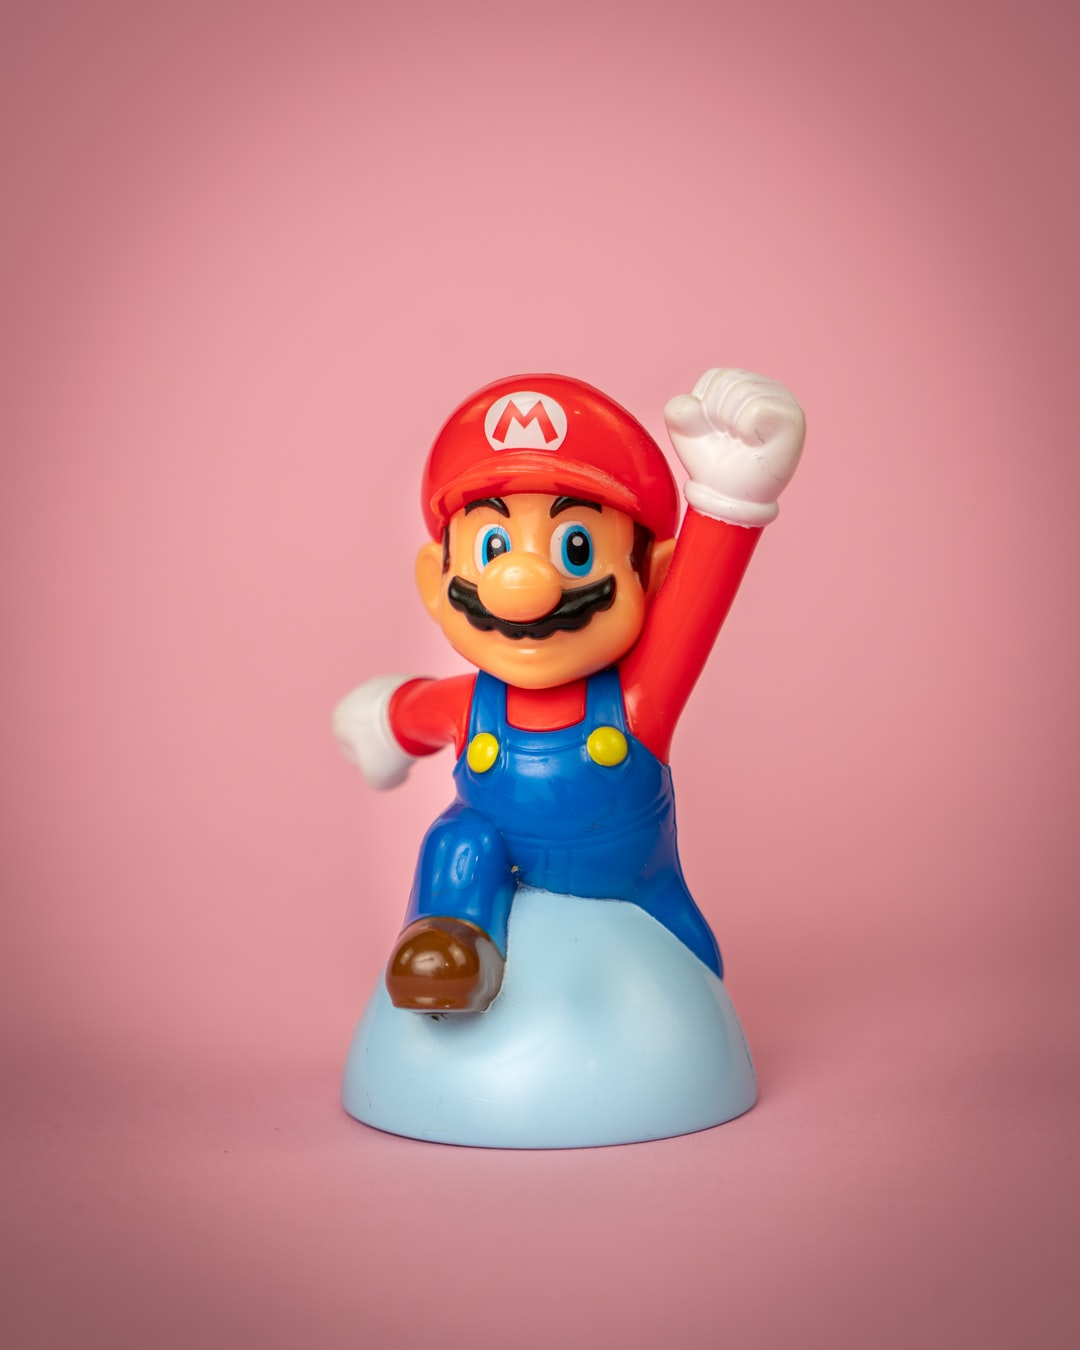 A Super Mario statue, given out by Nintendo on the Gamescom. You can see him in his classic jumping pose,.